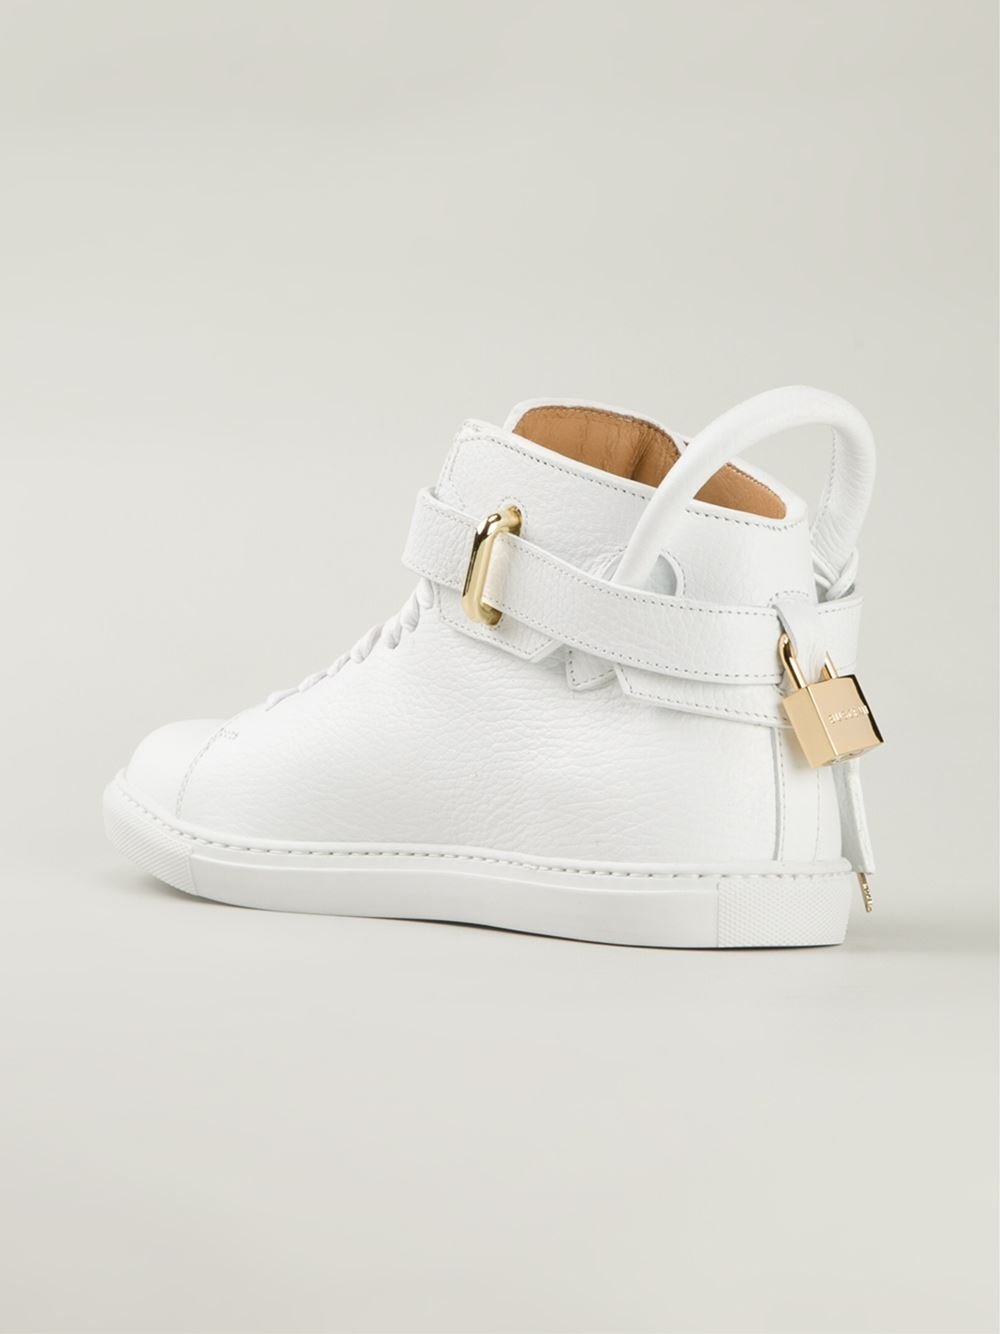 Buscemi padlock high tops cheap outlet store dYG1Ep